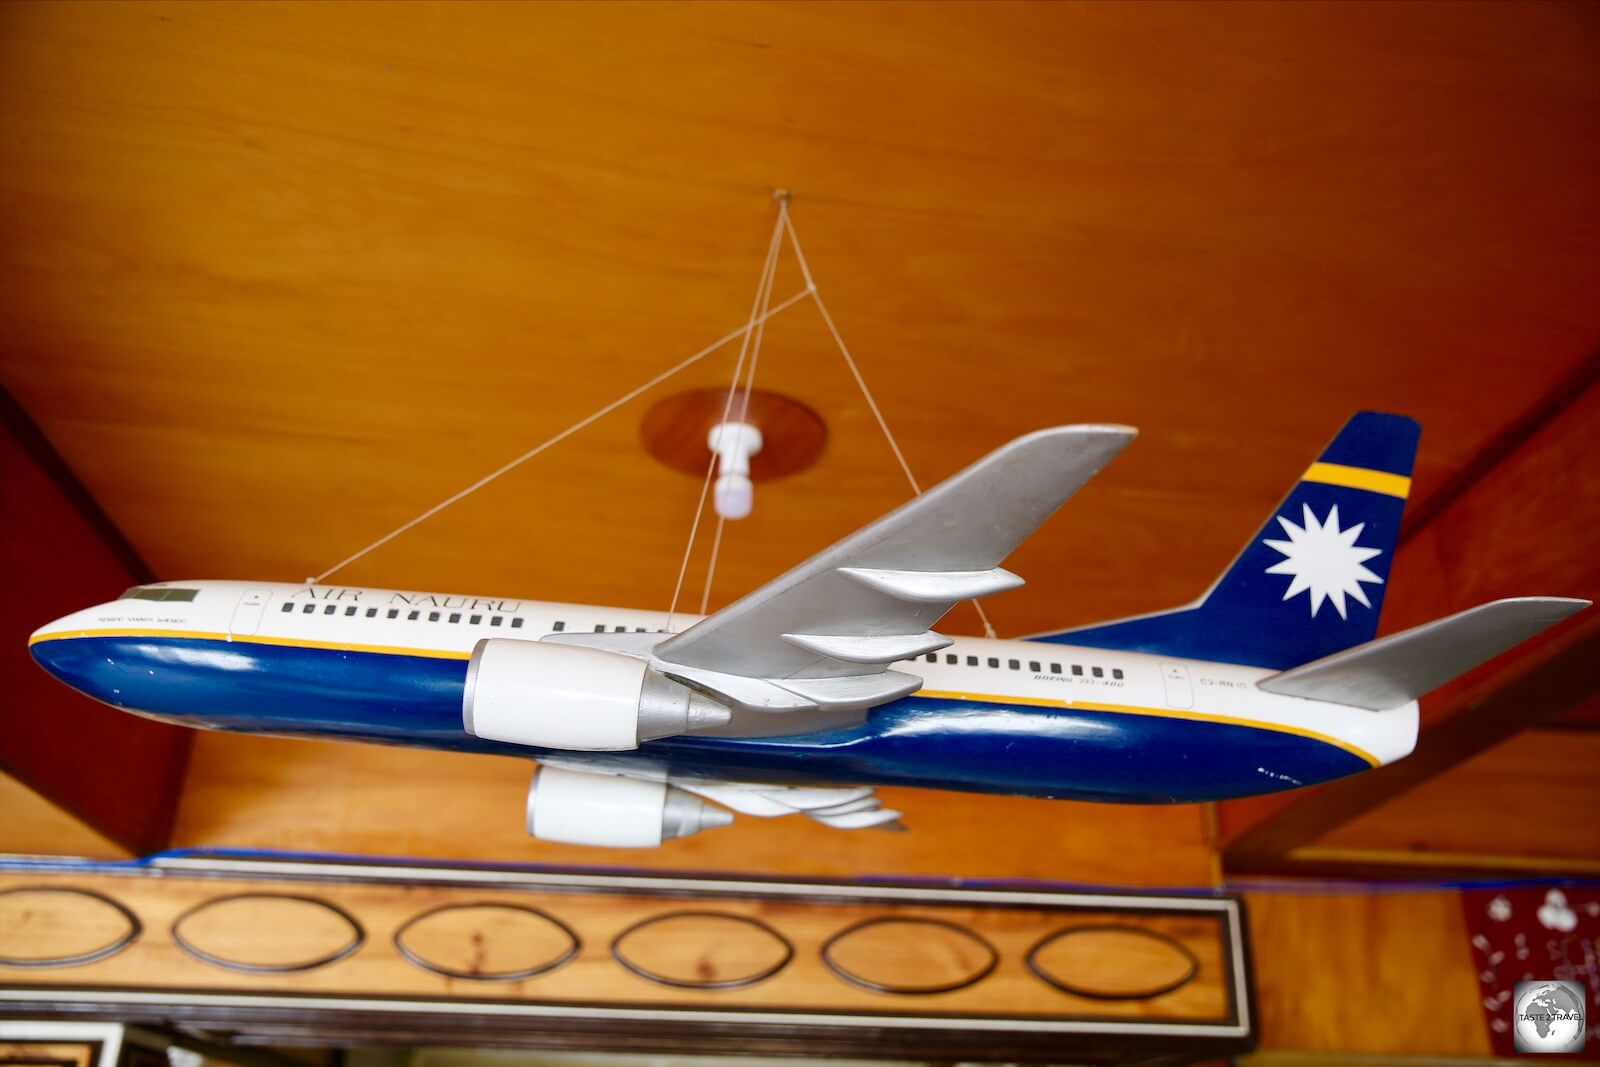 A model of an old Air Nauru plane hangs from the ceiling of the reception at the OD-N-Aiwo Hotel.